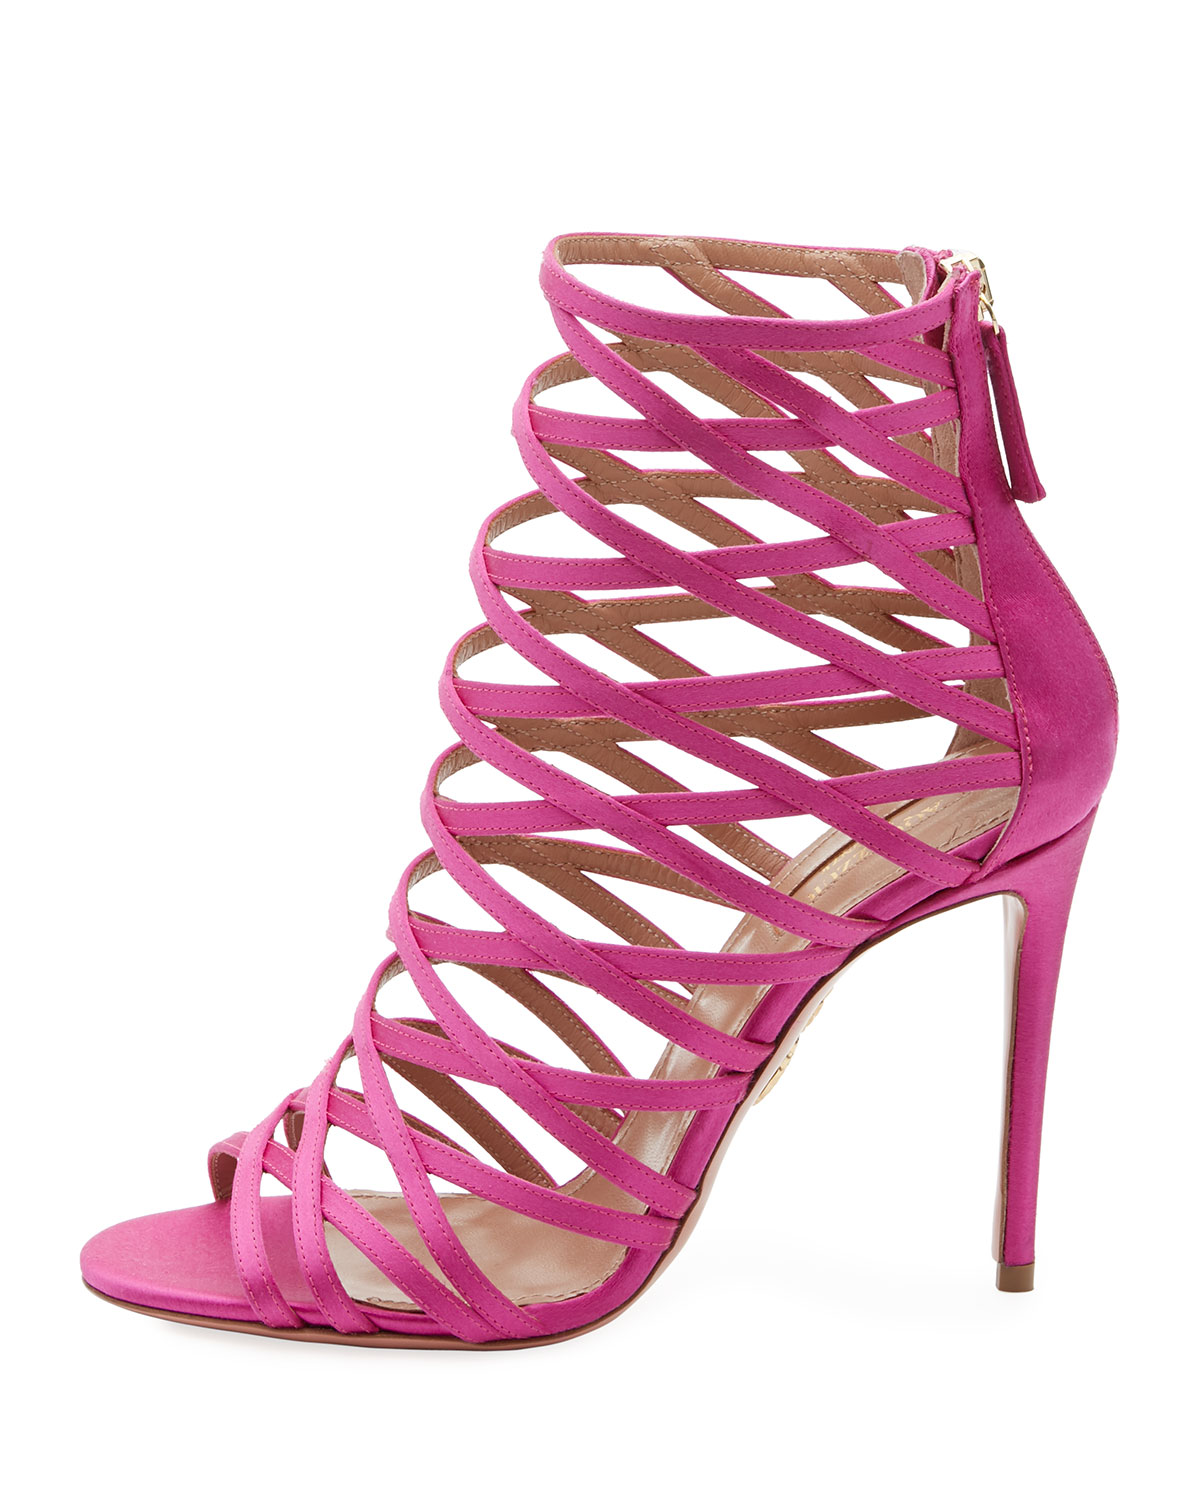 Aquazzura Knockout Caged 105mm Sandal DlkOVNANsi